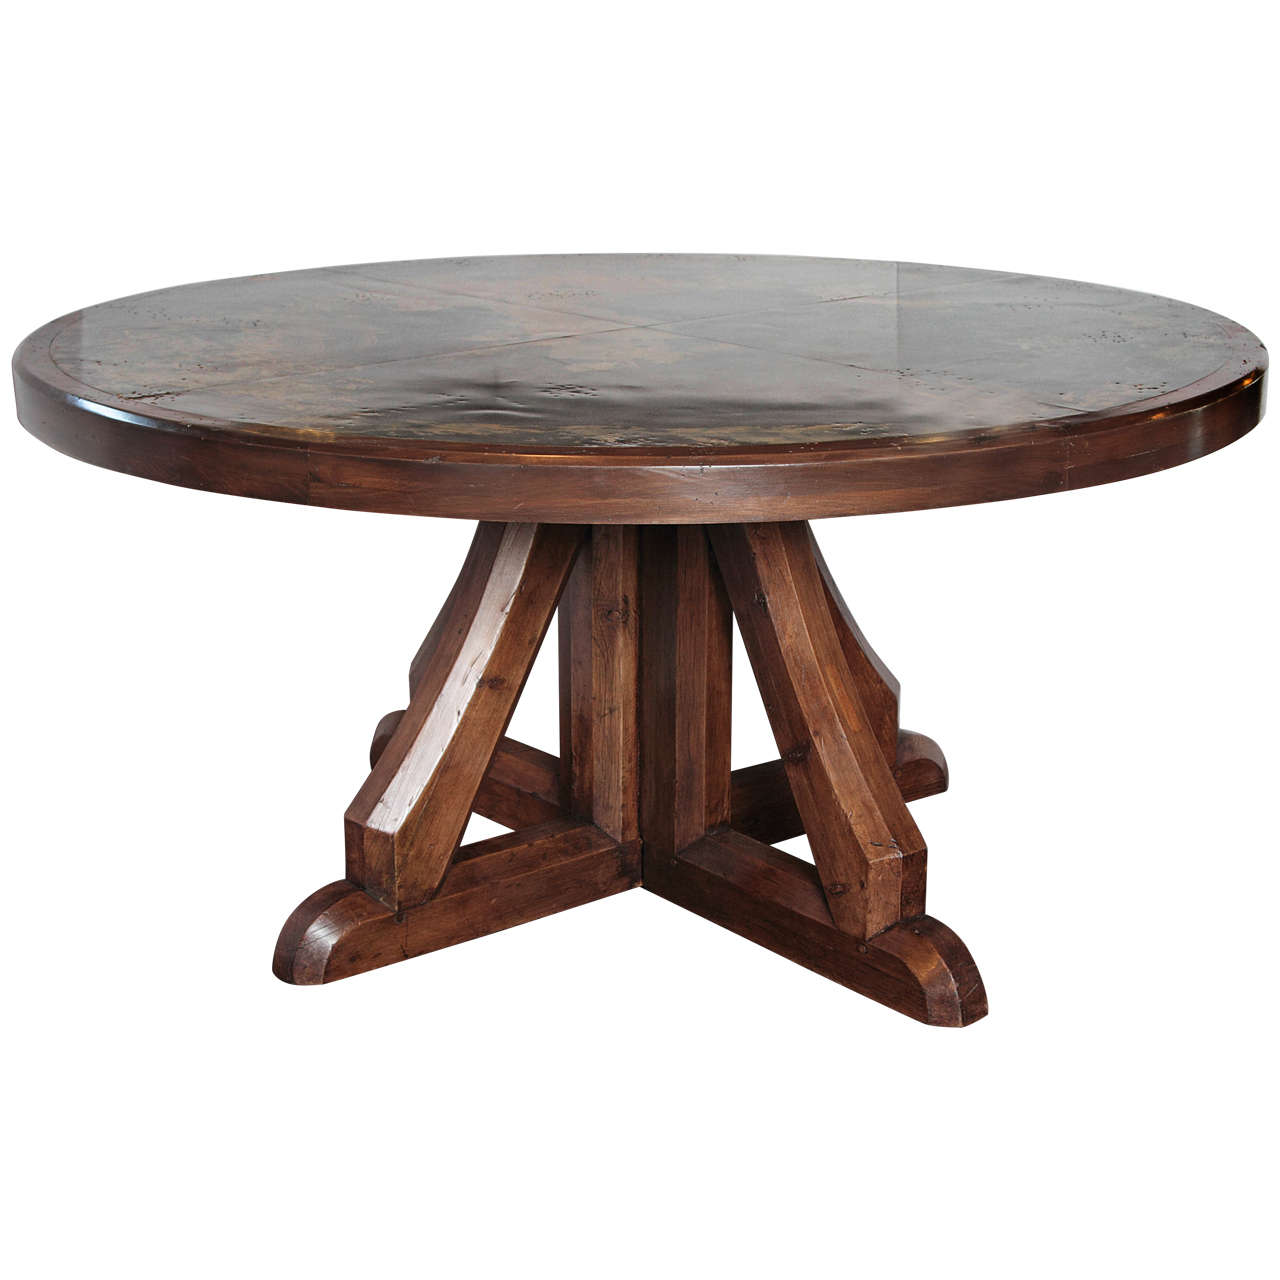 Irving Blvd Furniture Furniture Table Styles